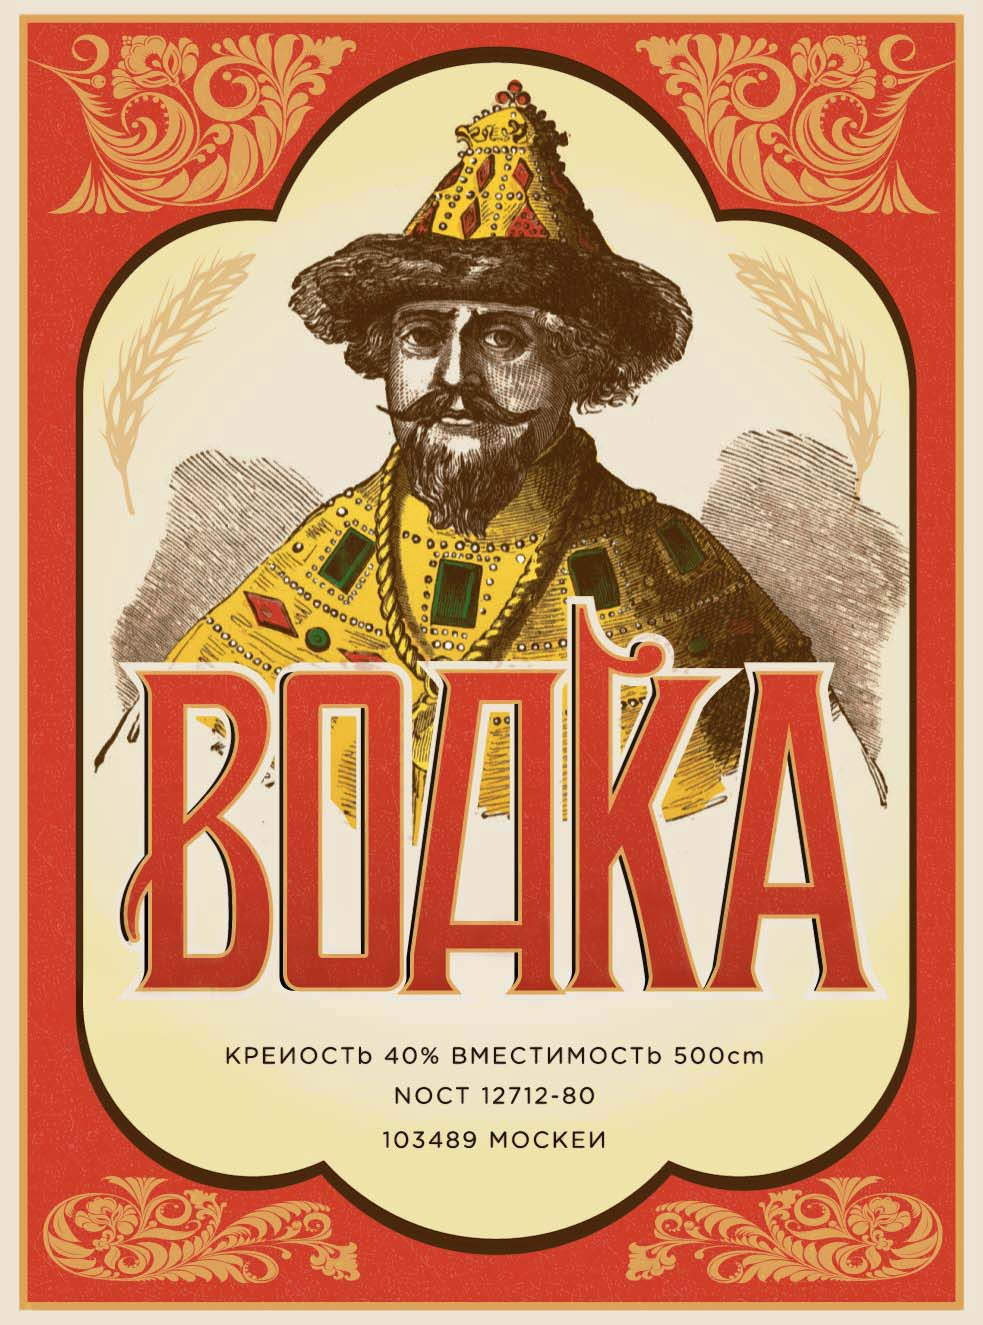 VODKA label v1.jpg